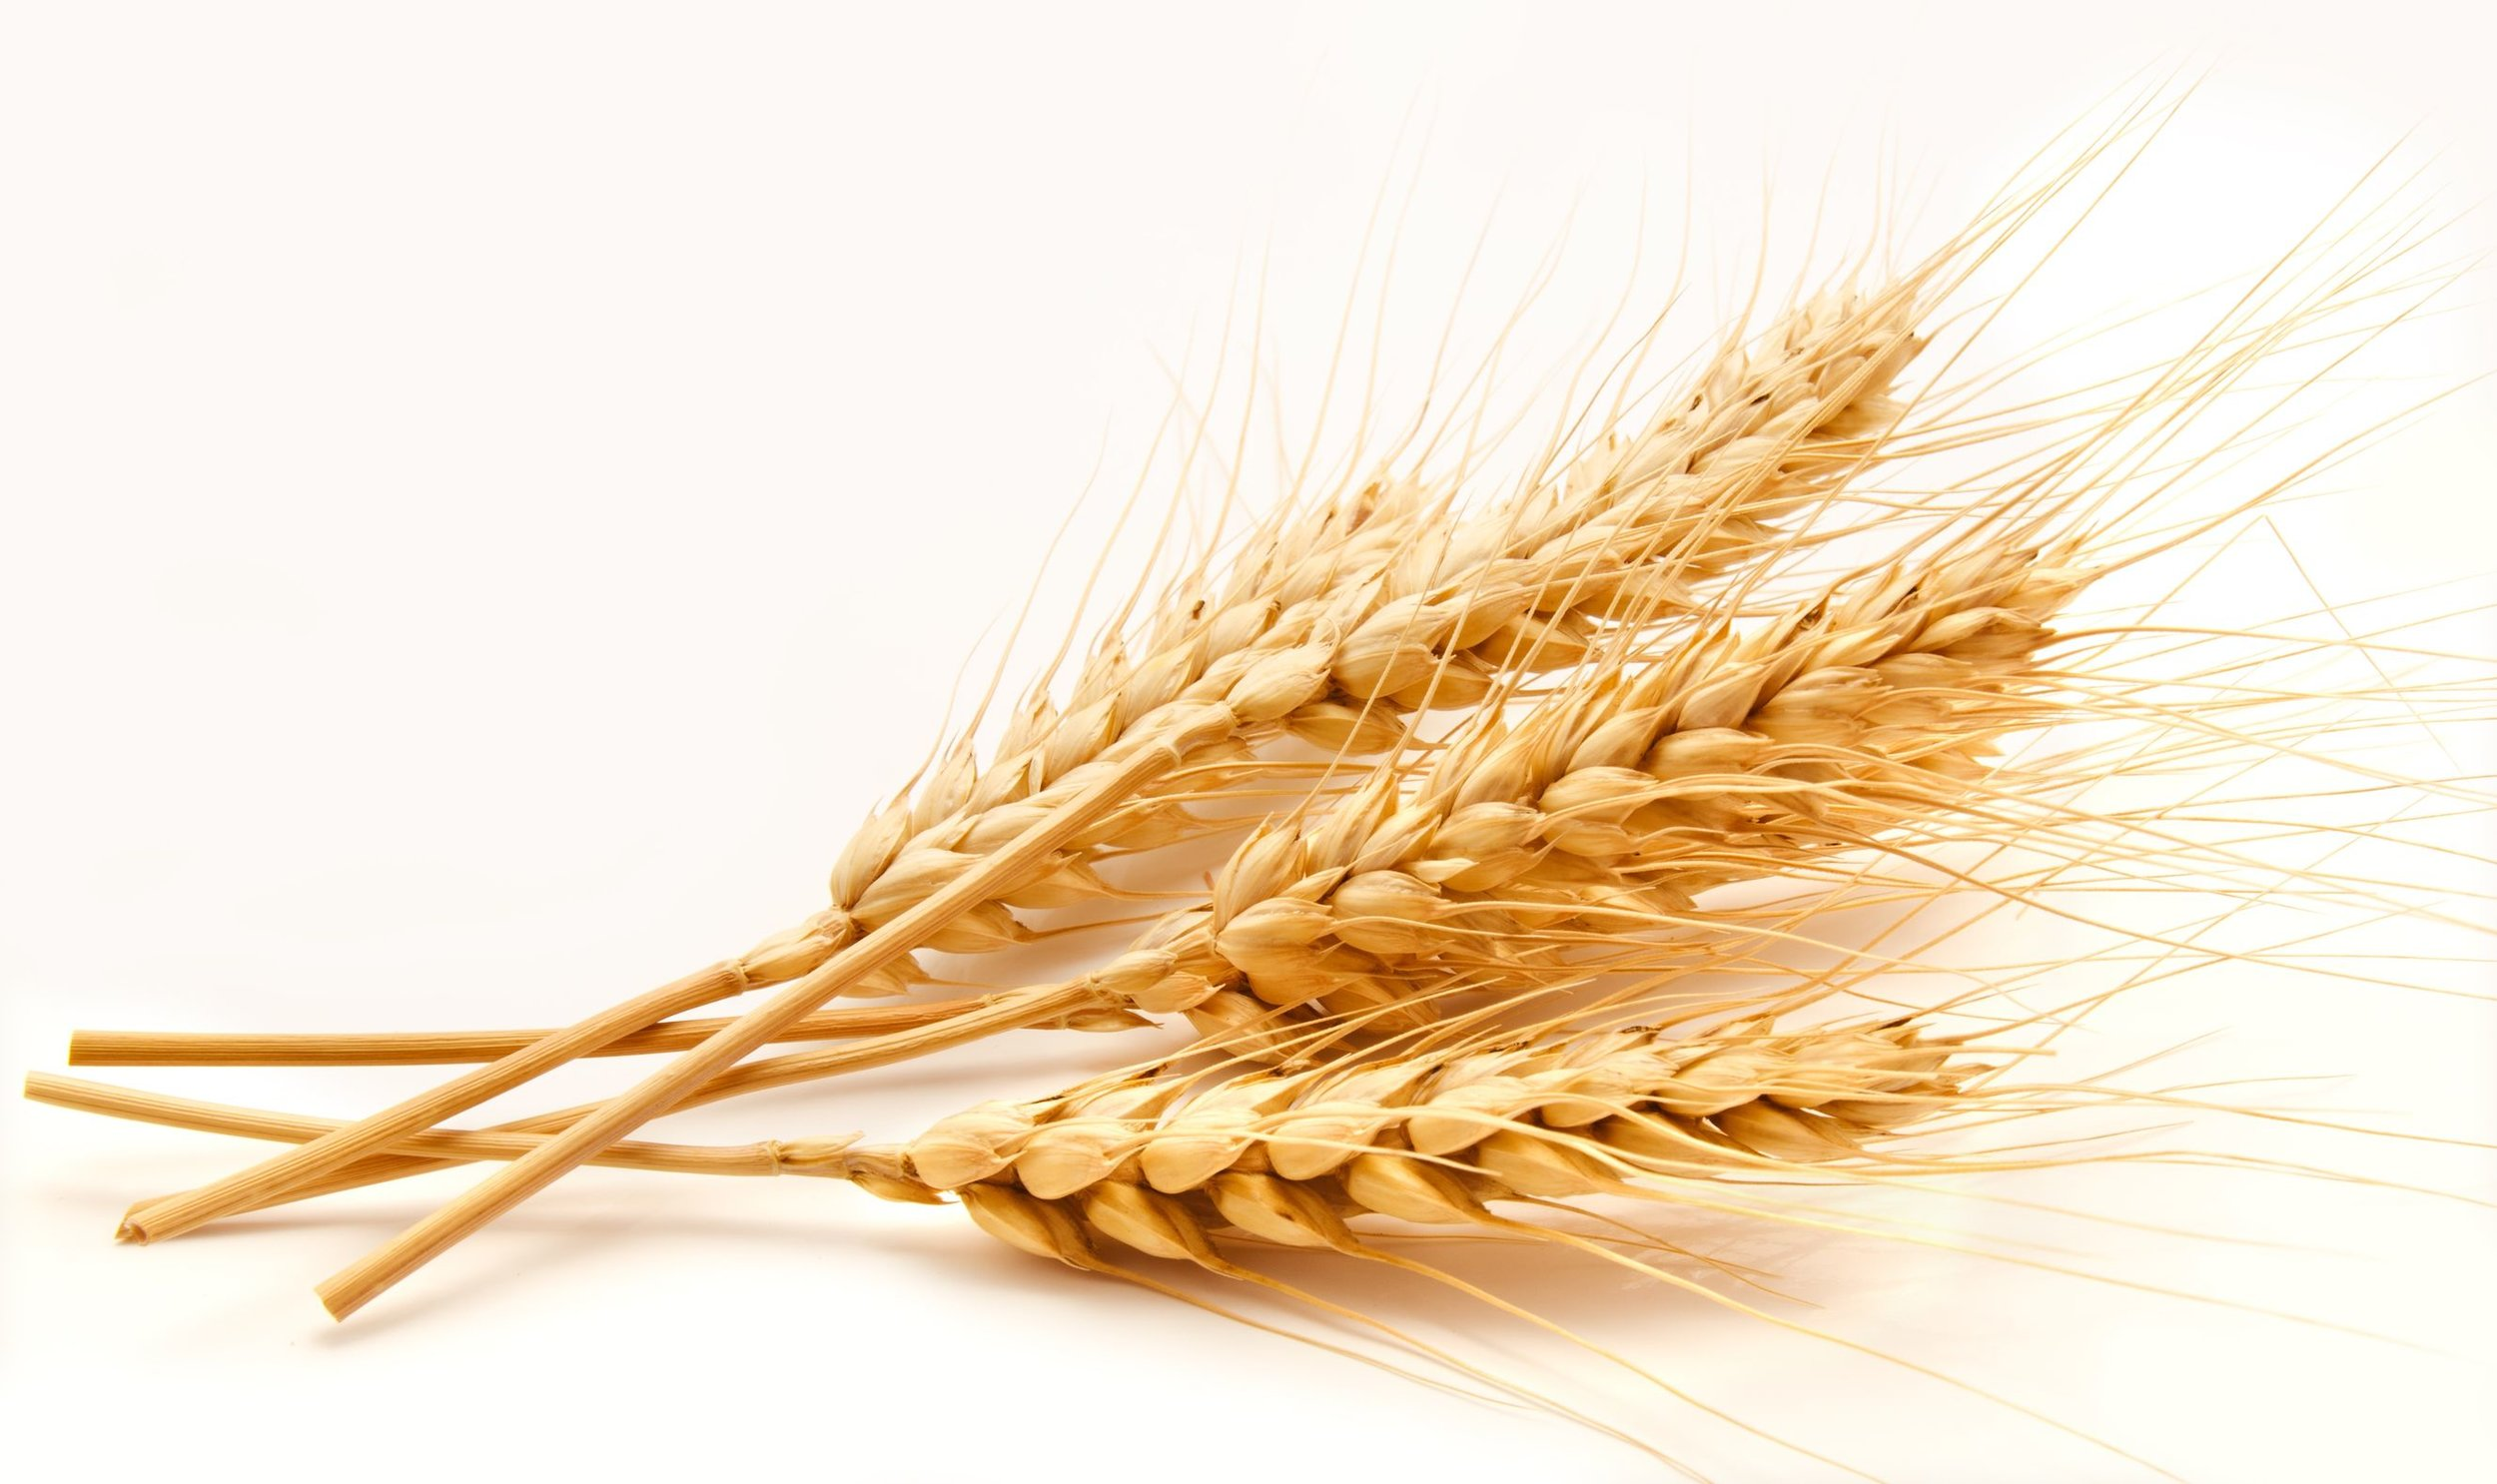 Gluten is found in wheat barley and rye Easy Gluten-Free Cooking Easy Delicious Gluten-Free Skillet Meals